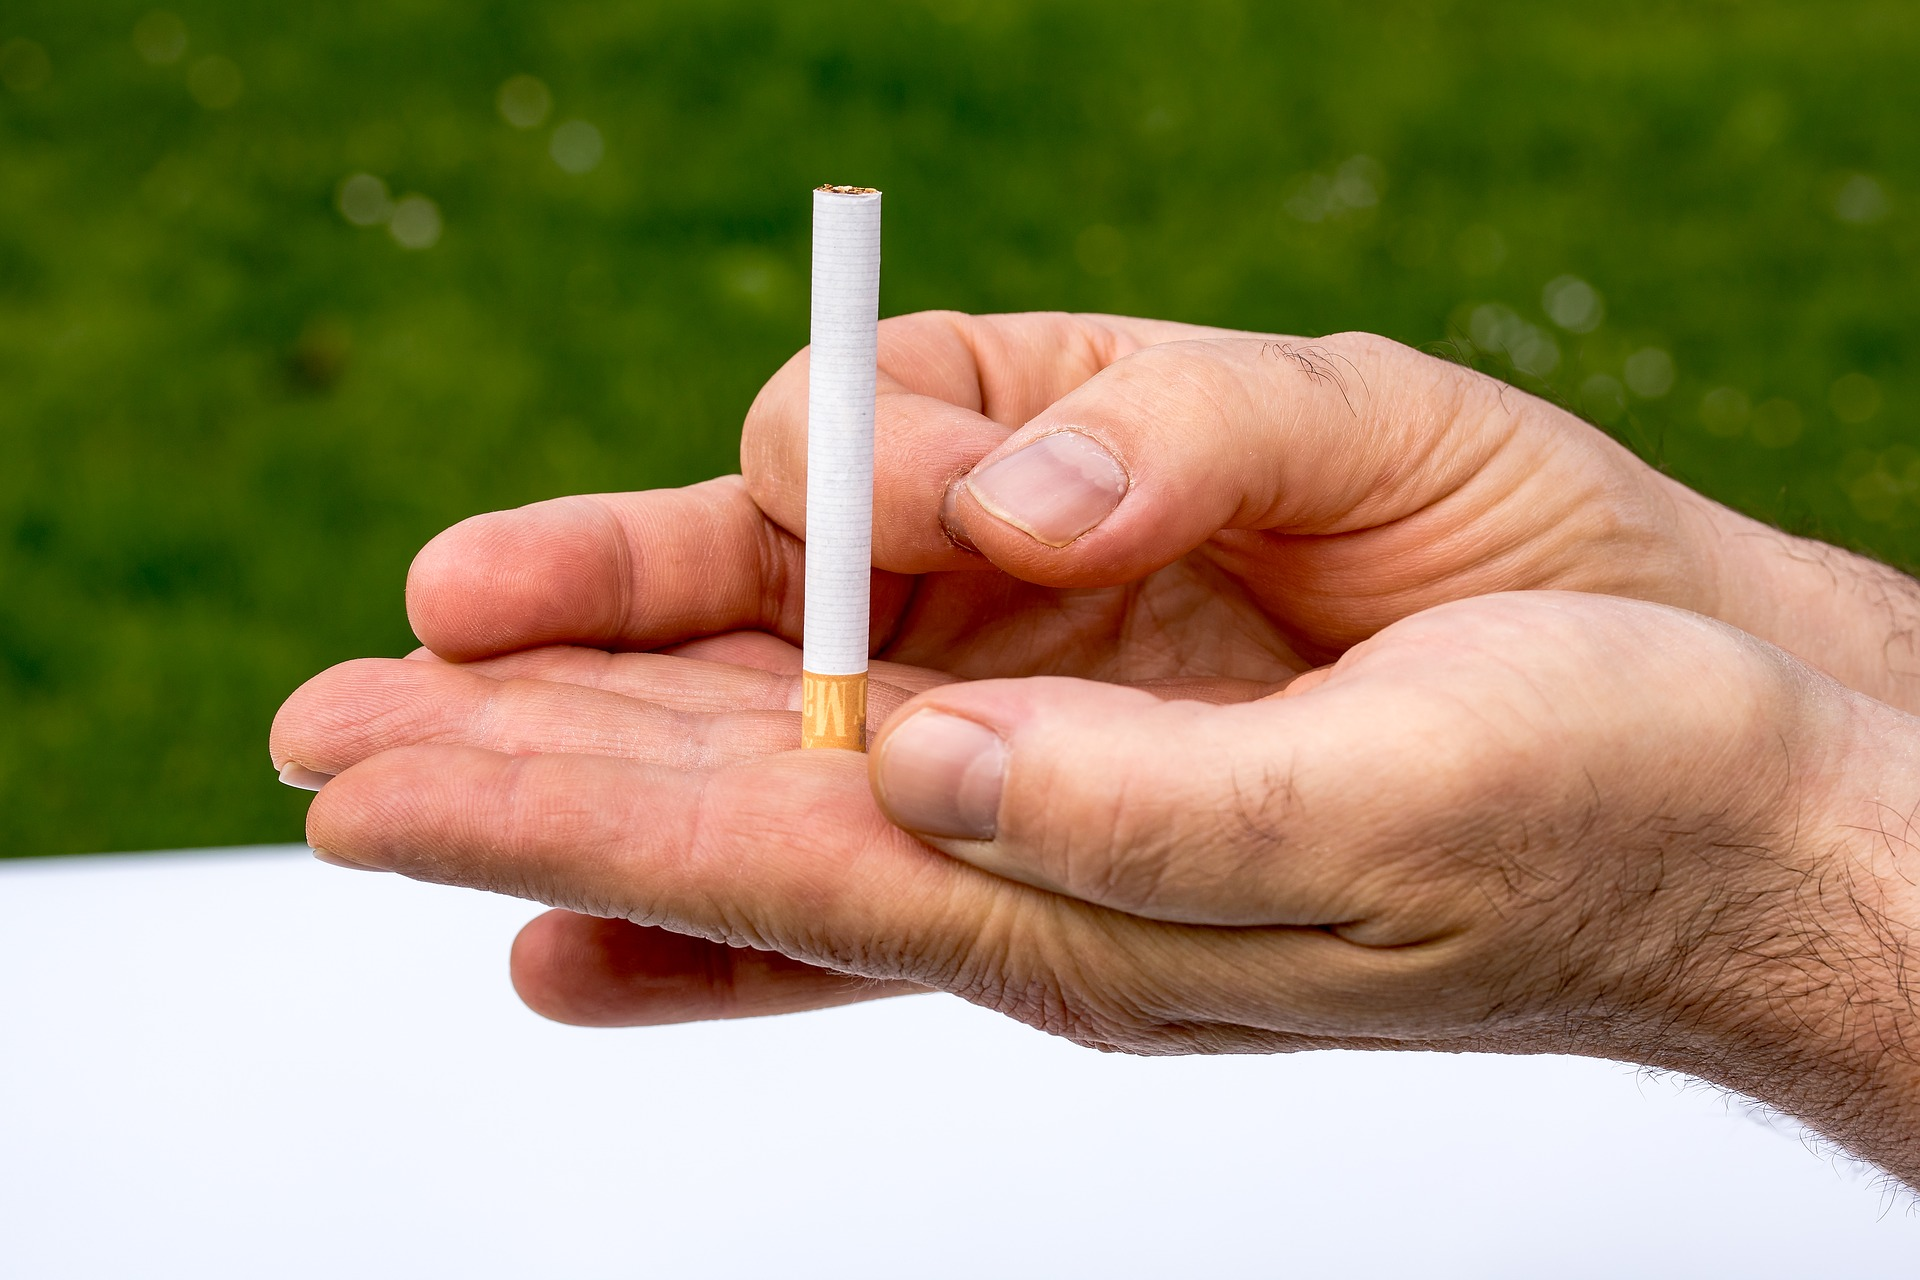 Psychiatric hospital to give patients e-cigarettes